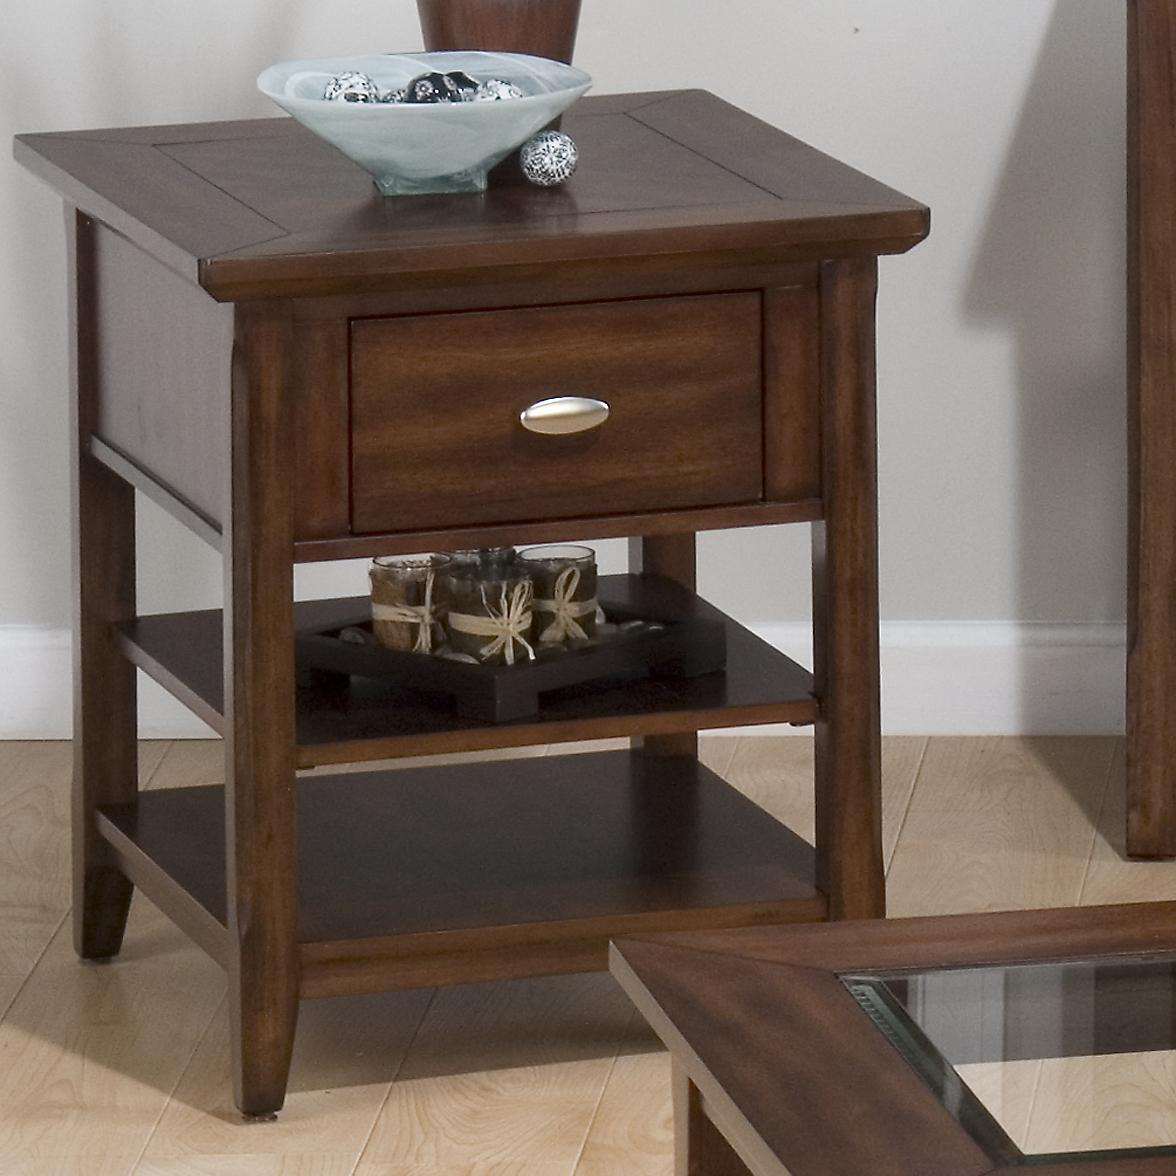 Bellingham Brown End Table w/ Drawer & 2 Shelves by Jofran at Pilgrim Furniture City